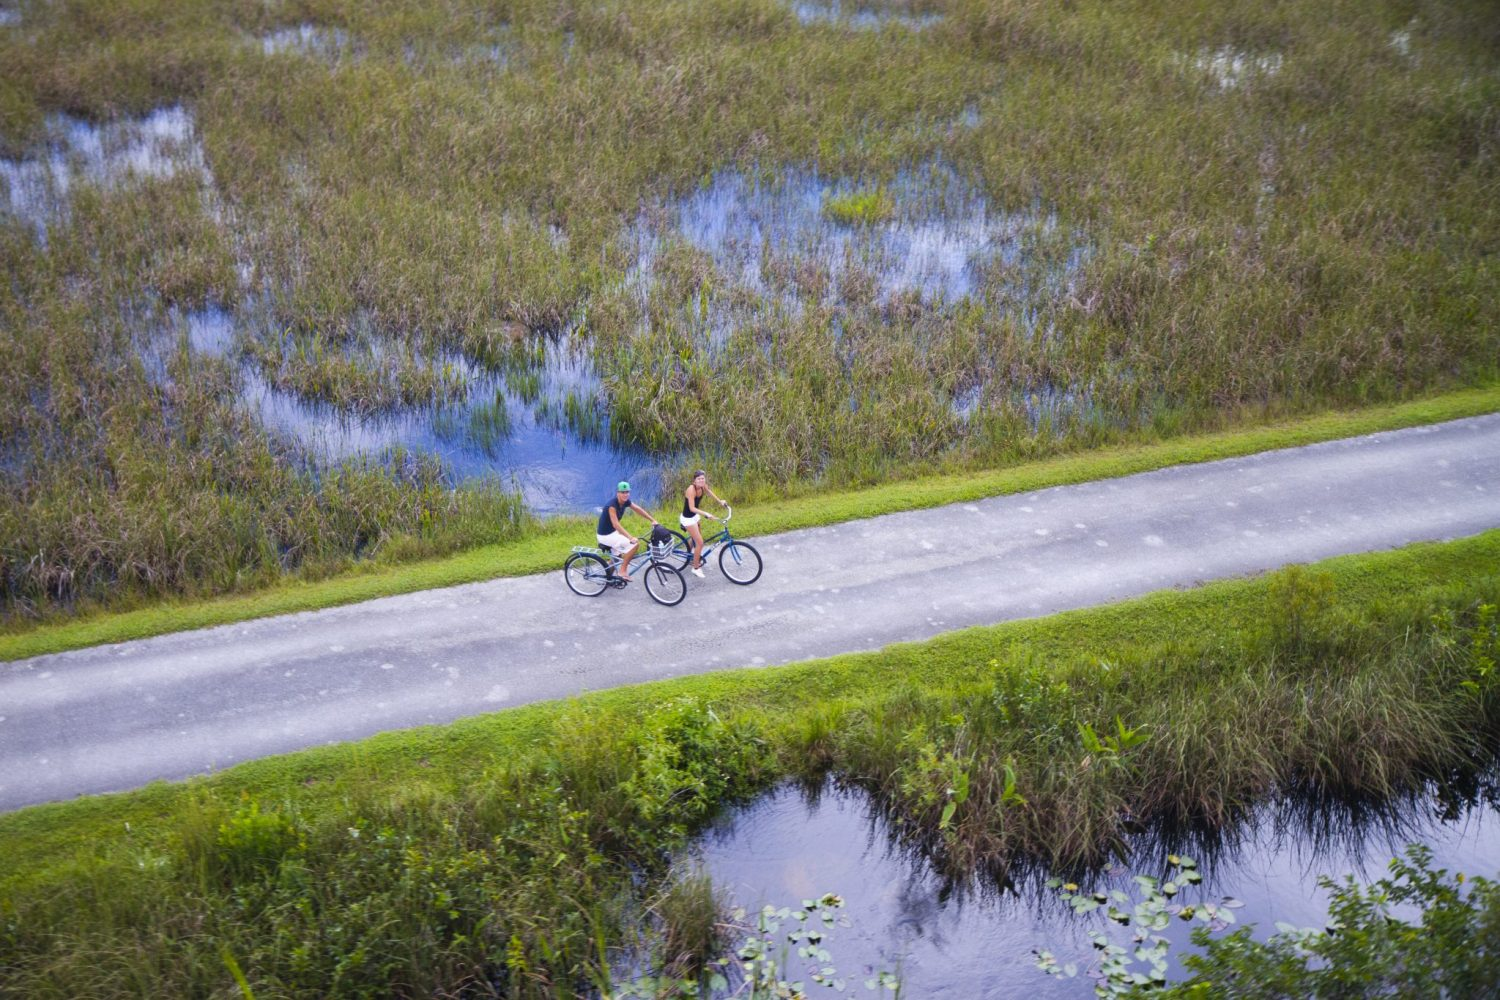 everglades visiter les everglades aller aux everglades alligator shark valley vélo blog miami off road